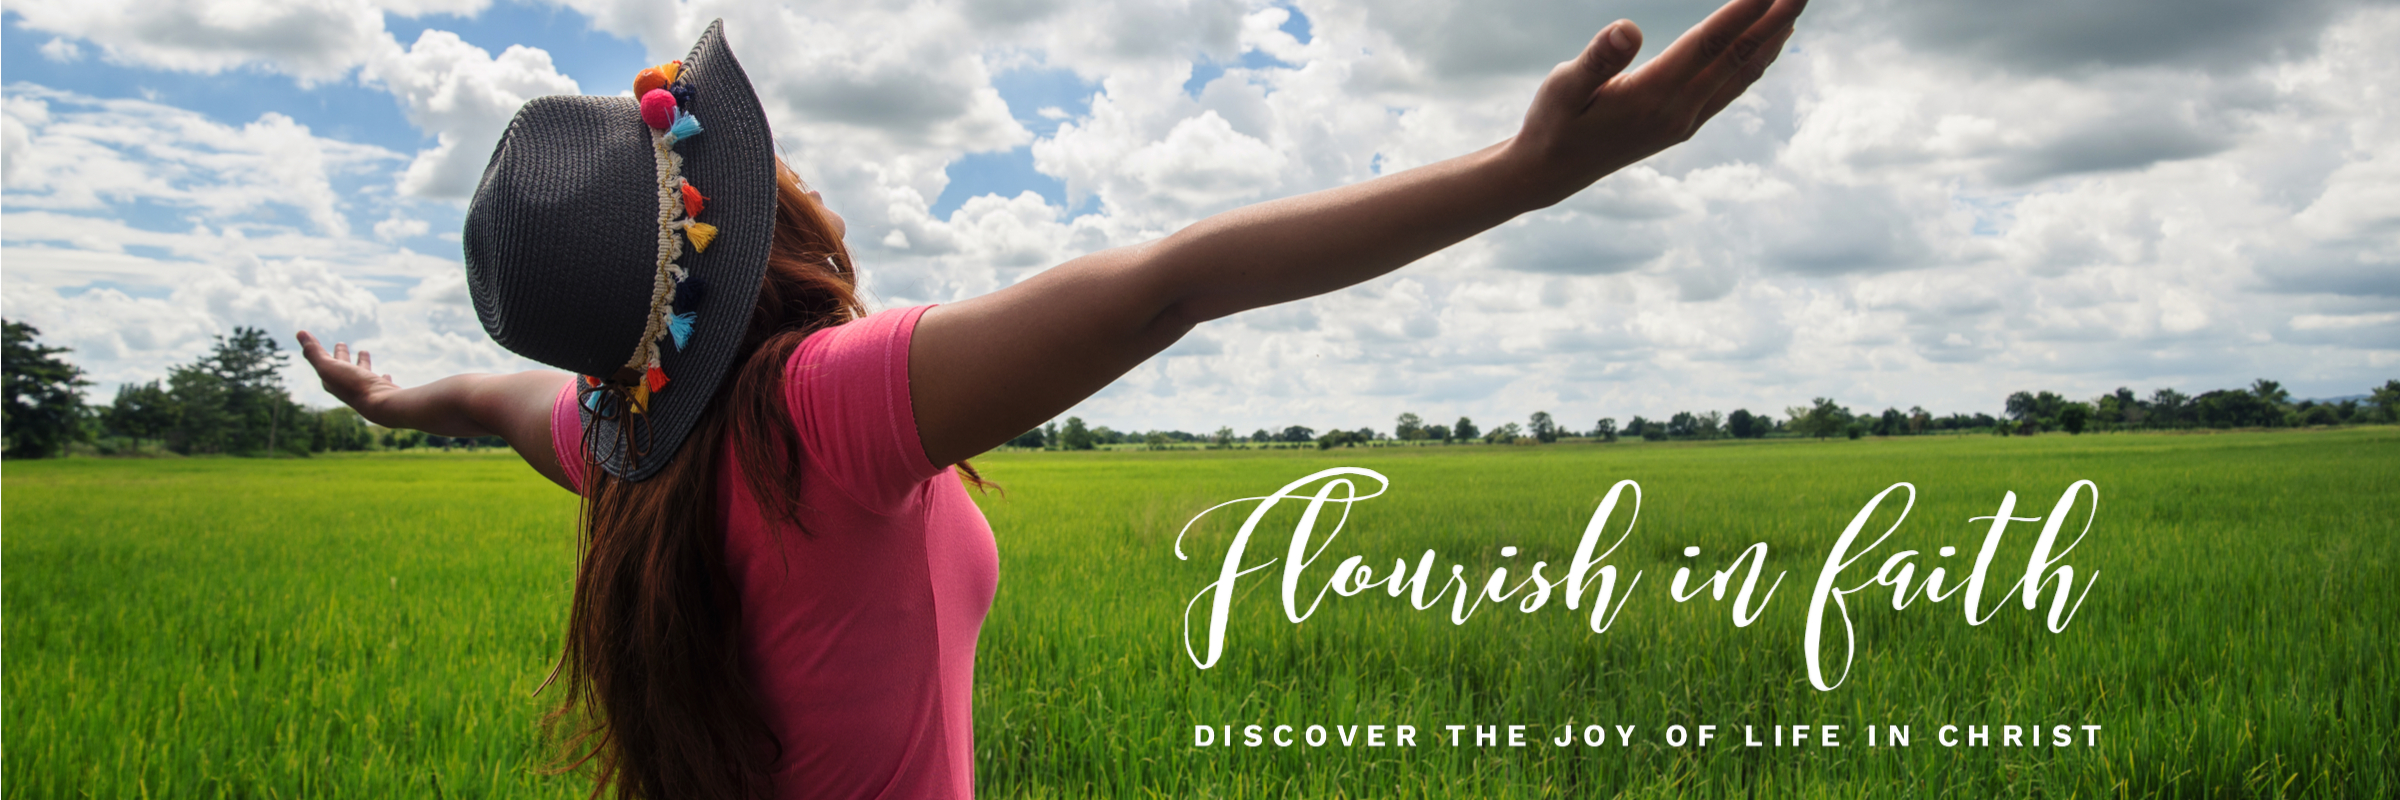 Click here to discover the Joy of Life in Christ